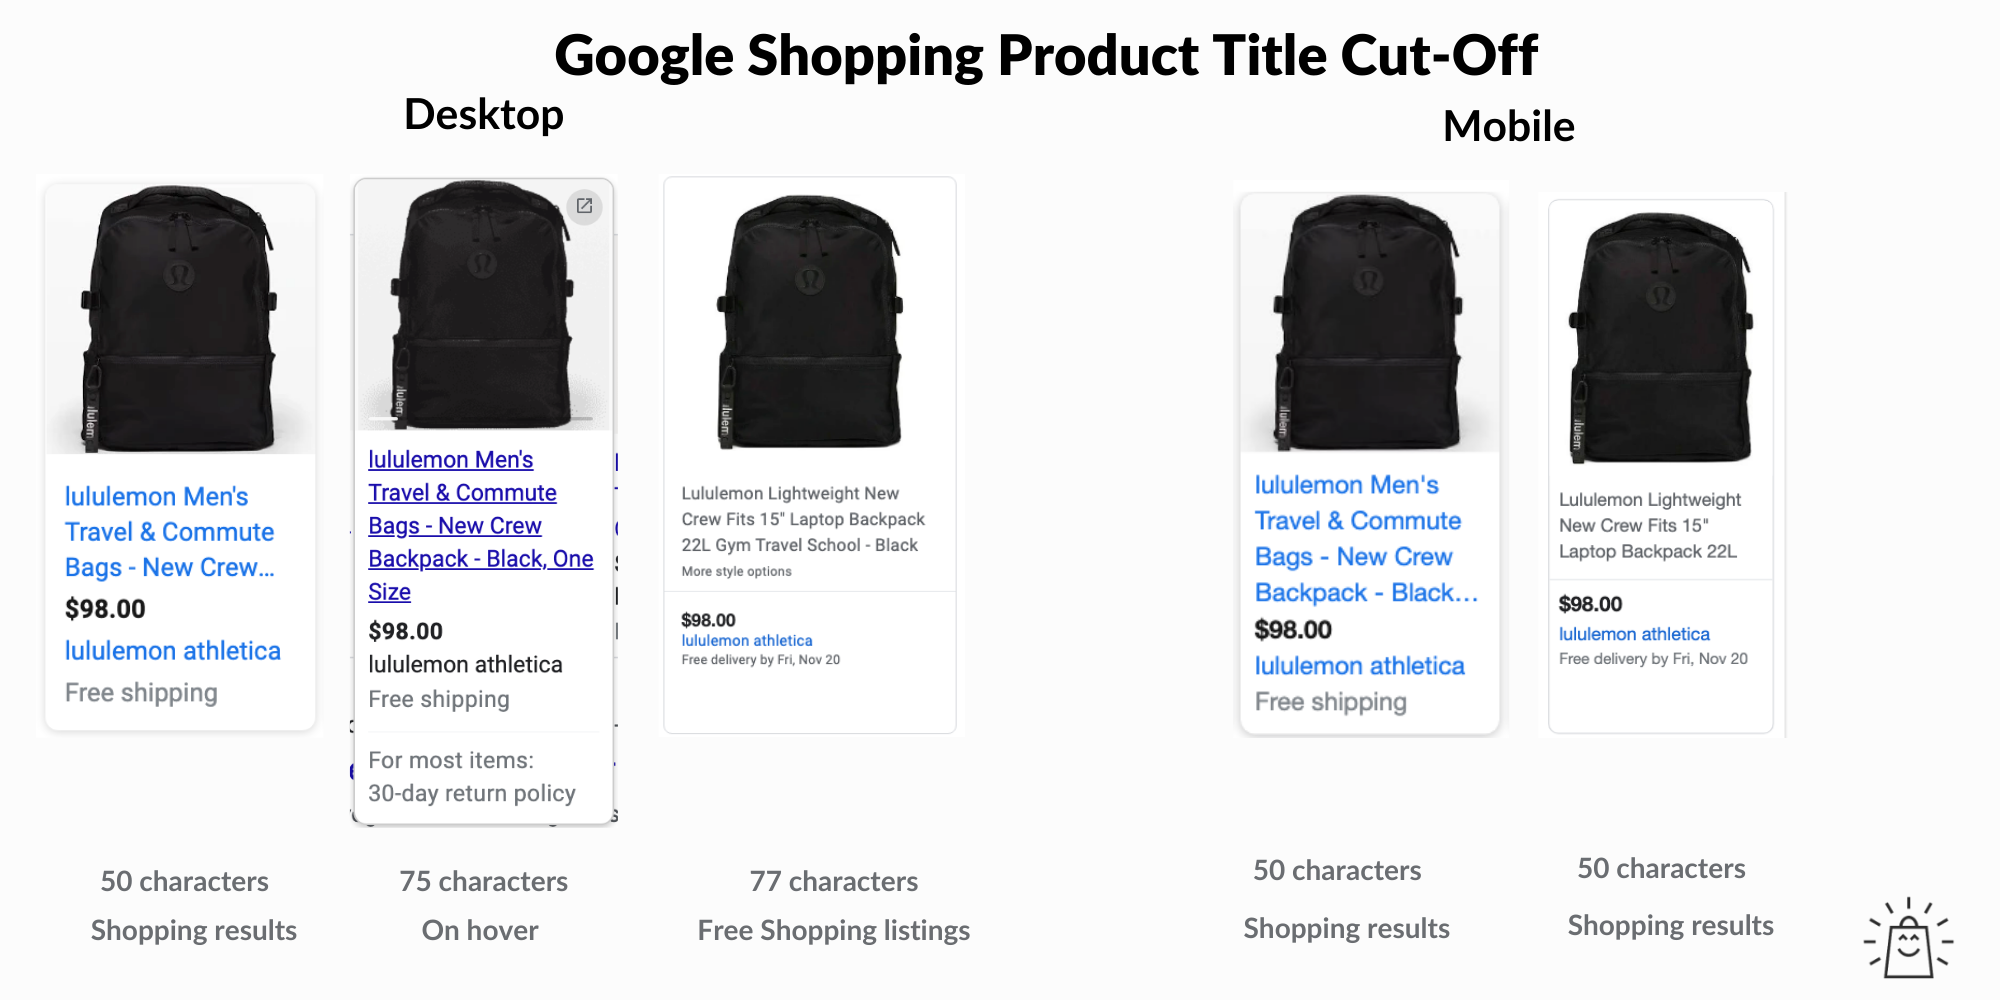 google-search-results-shopping-product-title-cut-off